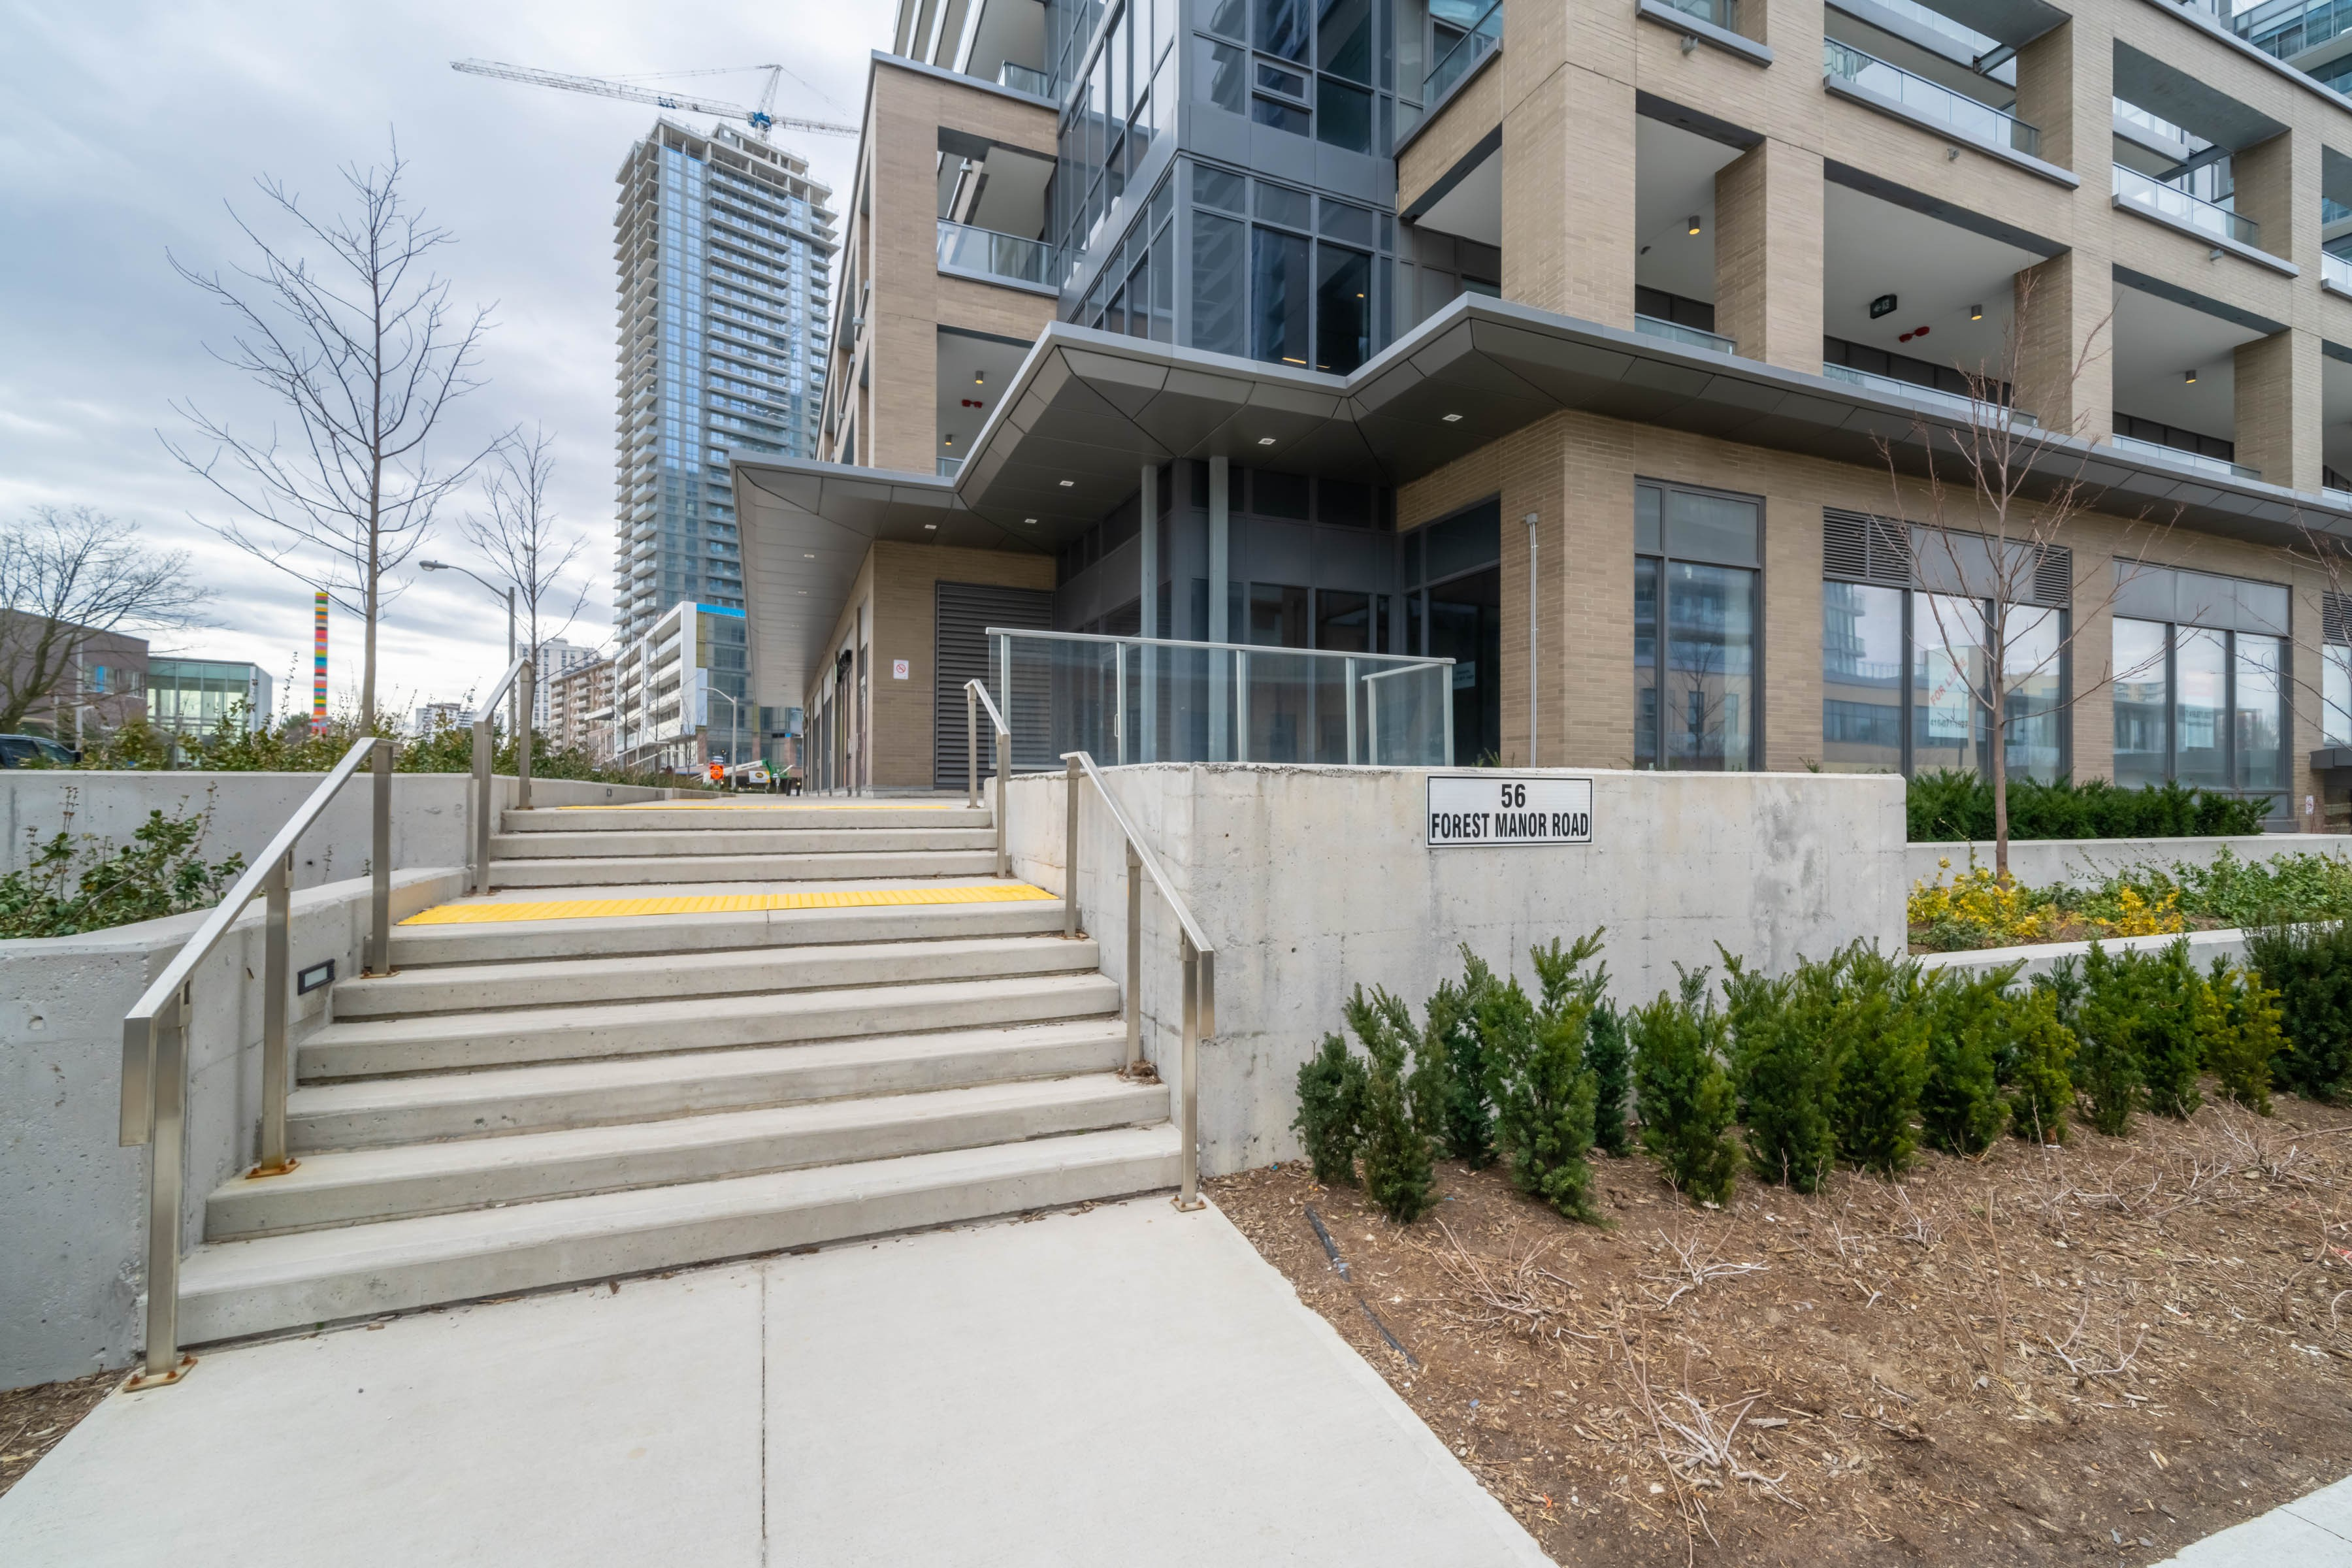 The Park Club - Emerald City at 56 Forest Manor Rd, Toronto 1